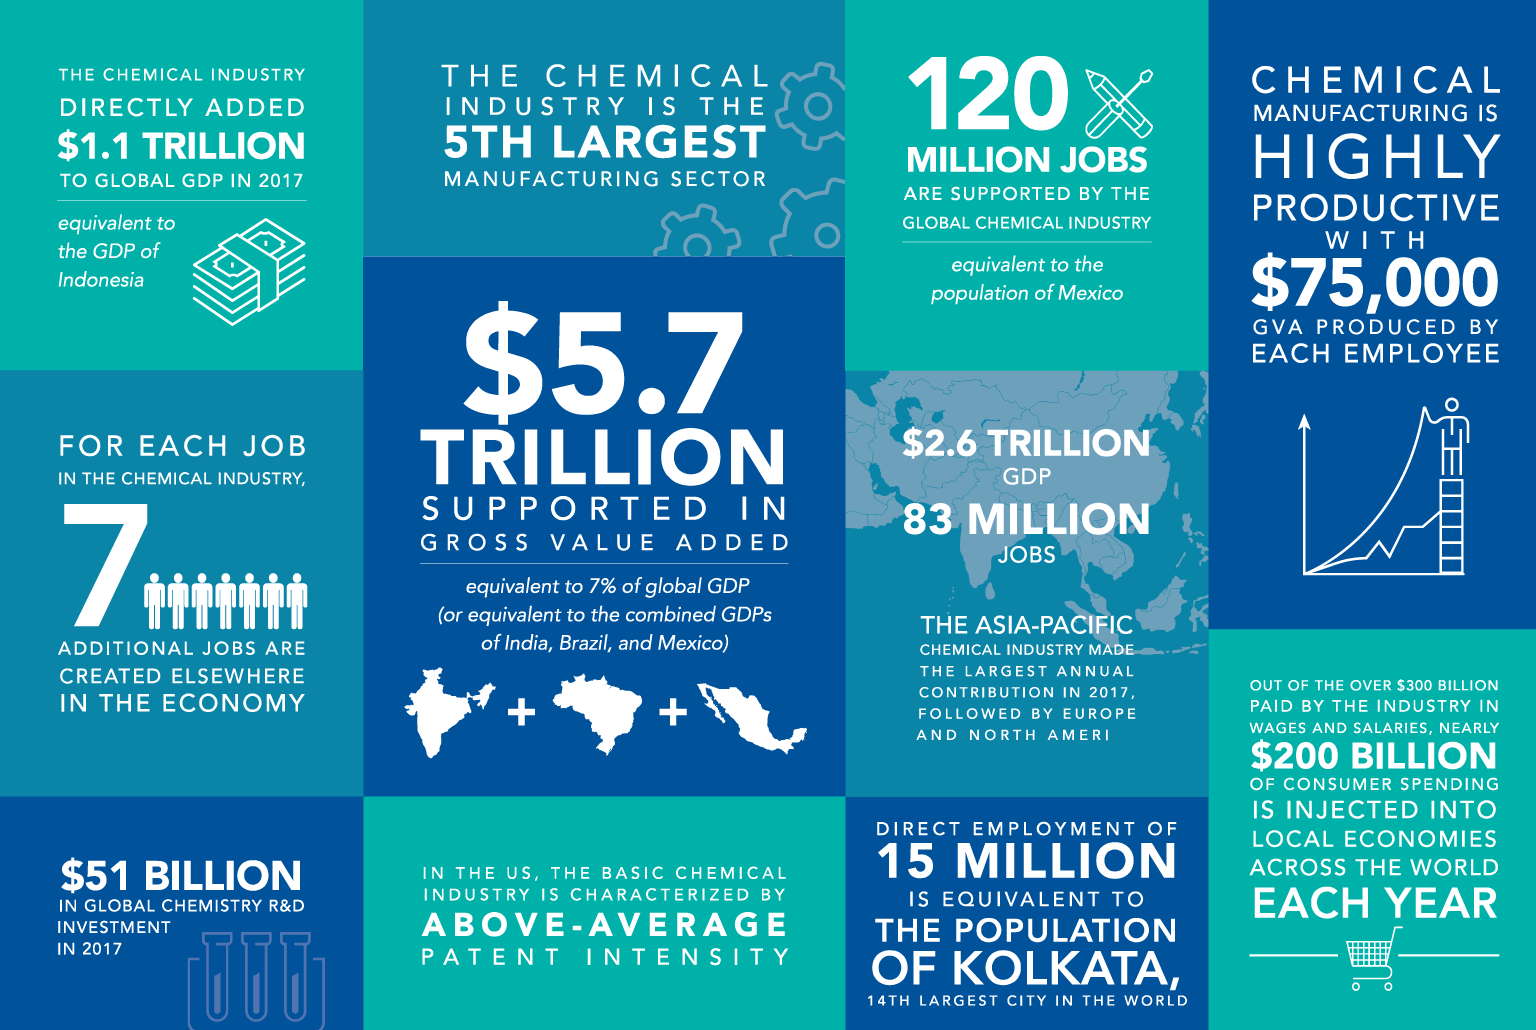 Global Chemical Industry By The Numbers